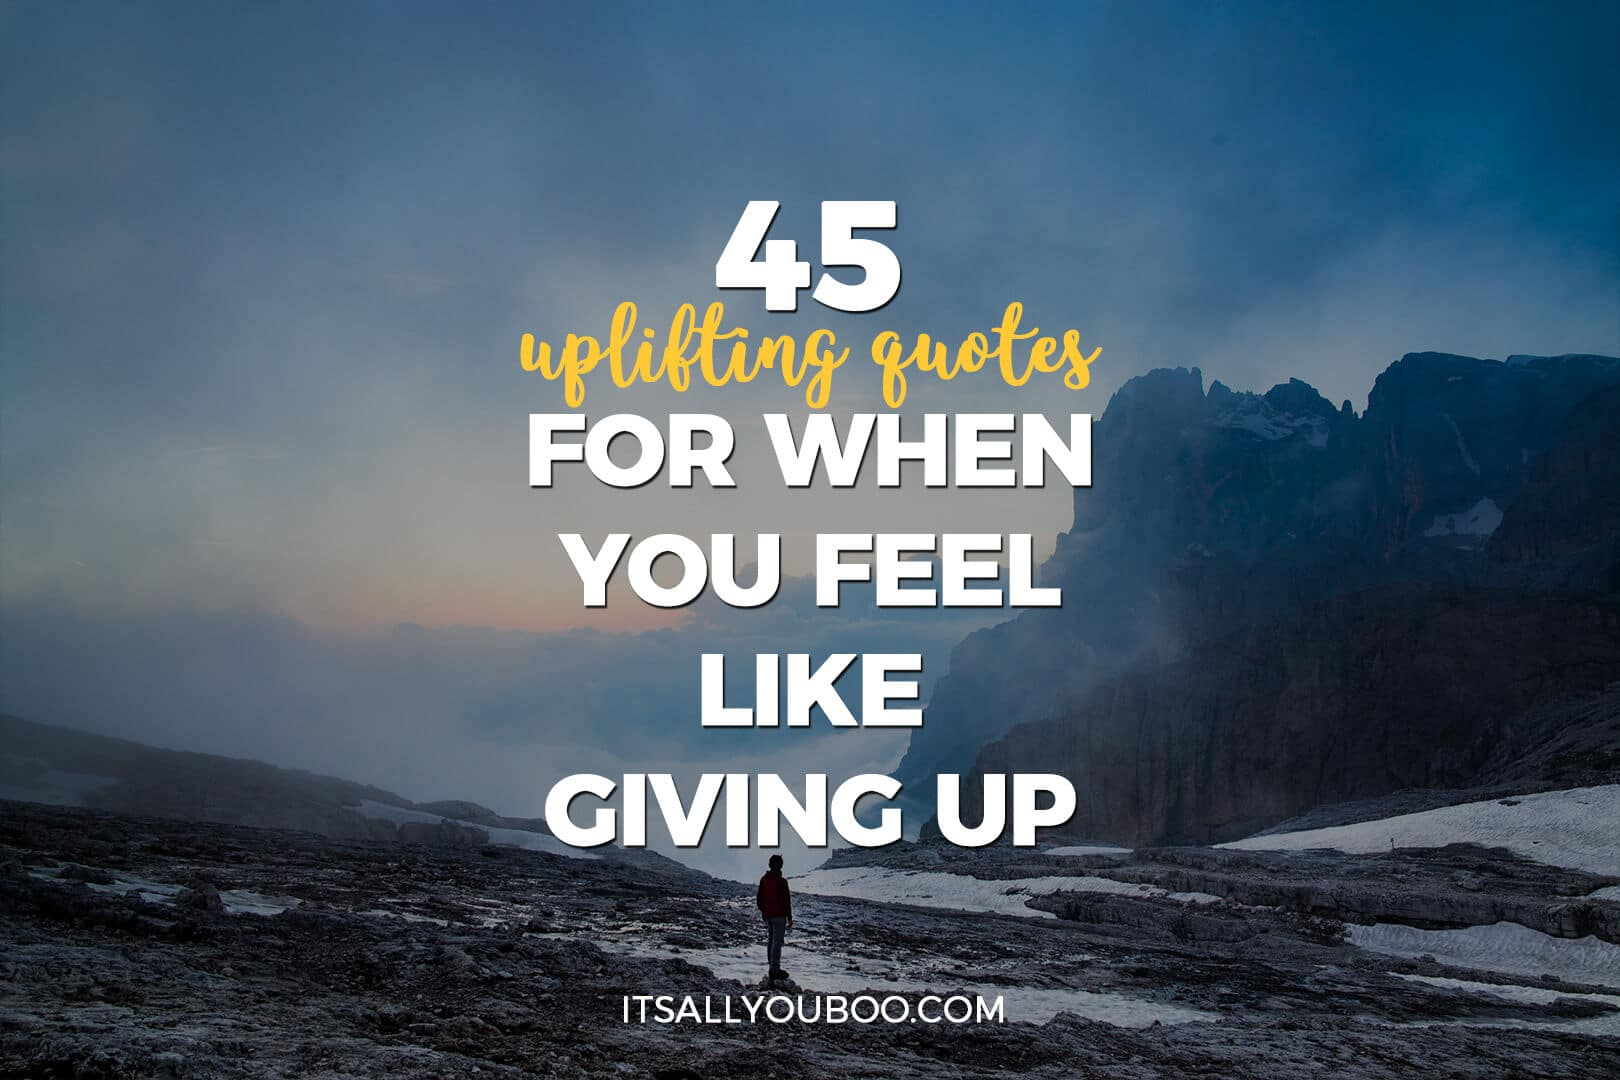 Uplifting Quotes 45 Quotes For When You Feel Like Giving Up  It's All You Boo